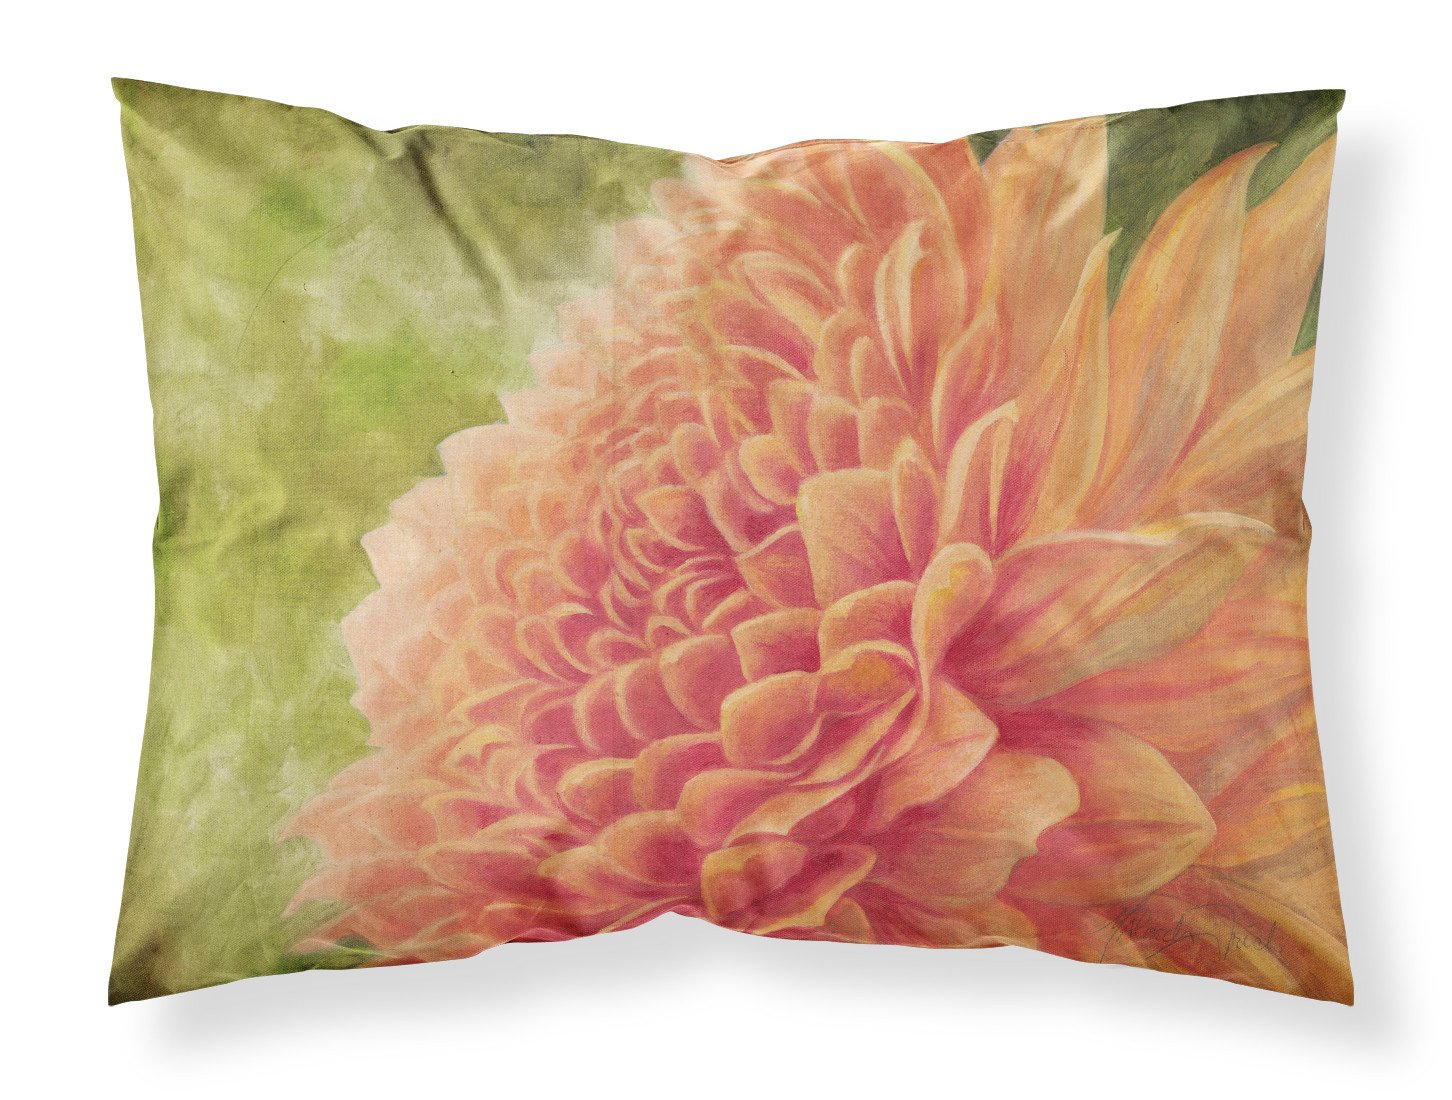 Buy this Floral by Malenda Trick Fabric Standard Pillowcase TMTR0232PILLOWCASE